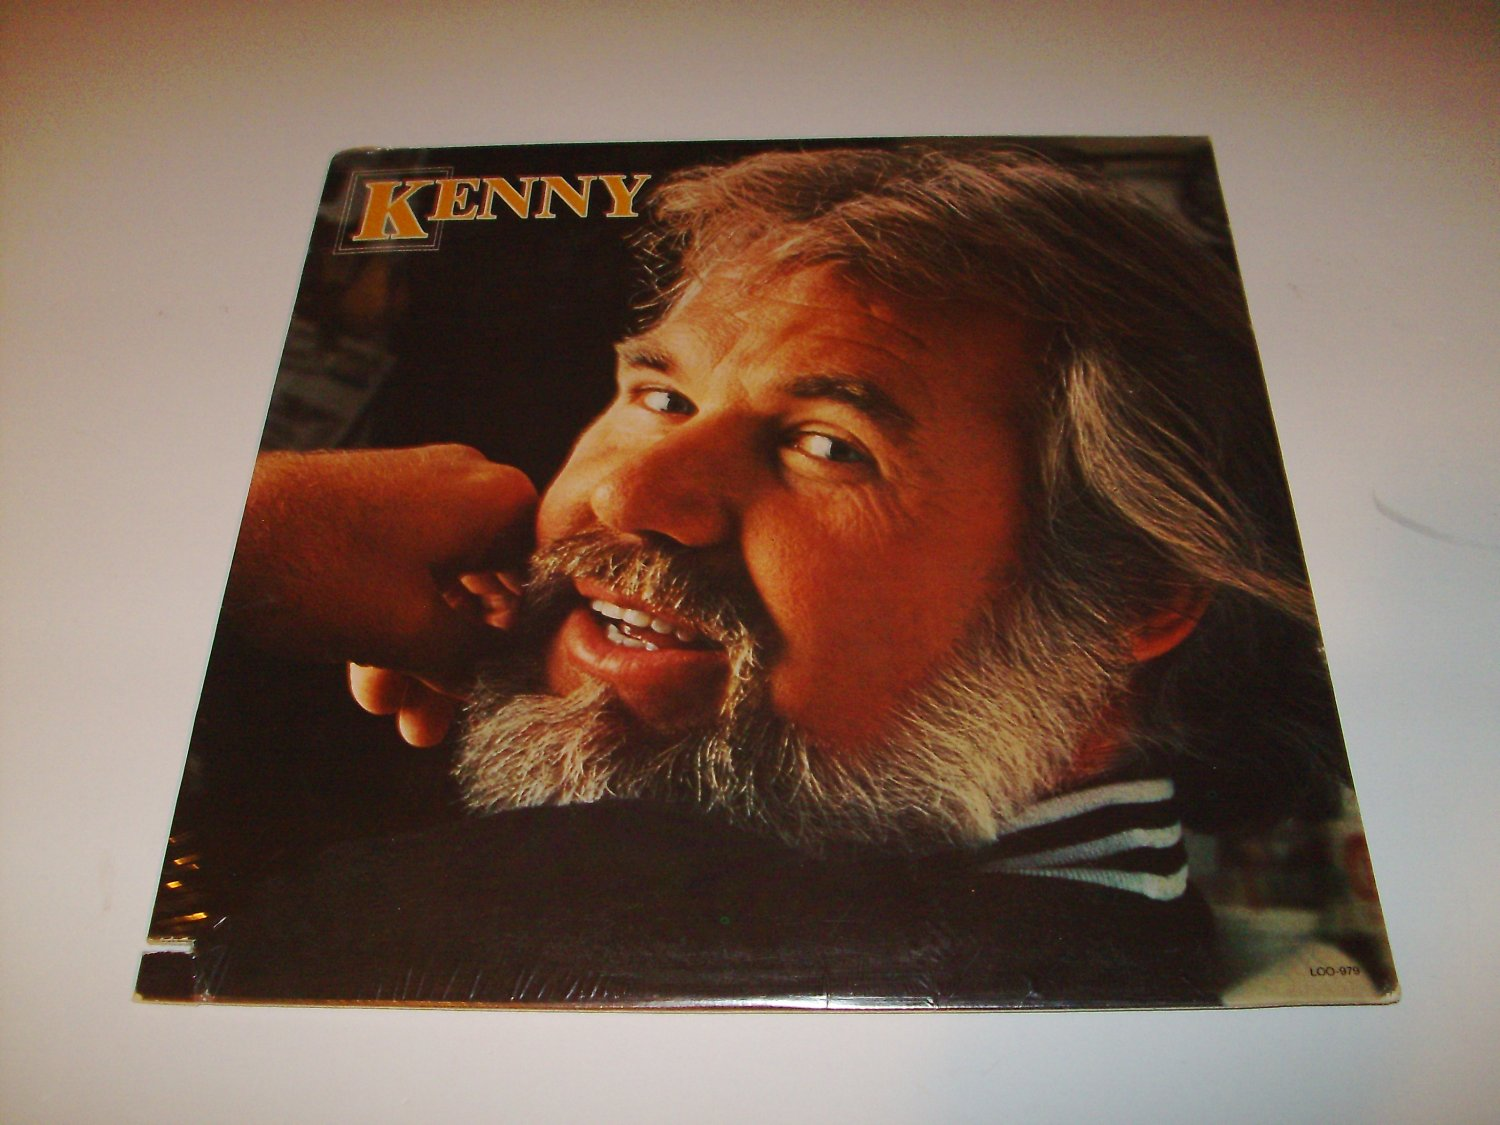 Kenny Rogers - Kenny (LOO 979) on 33 rpm Vinyl LP